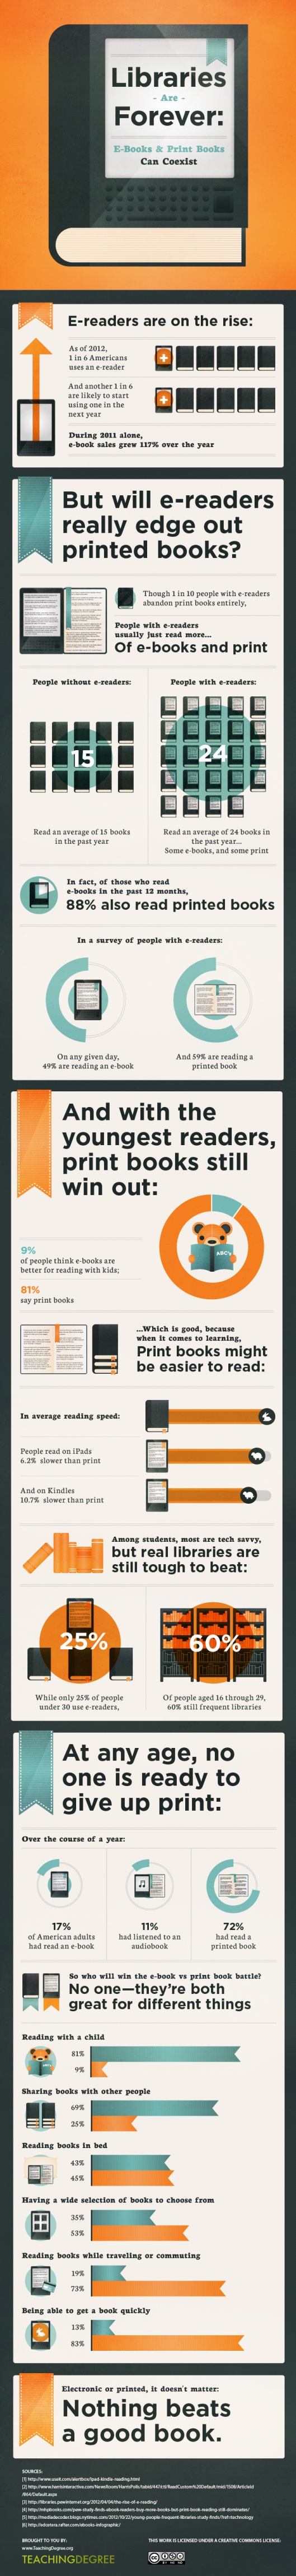 book vs ebook infographic by TeachingDegree